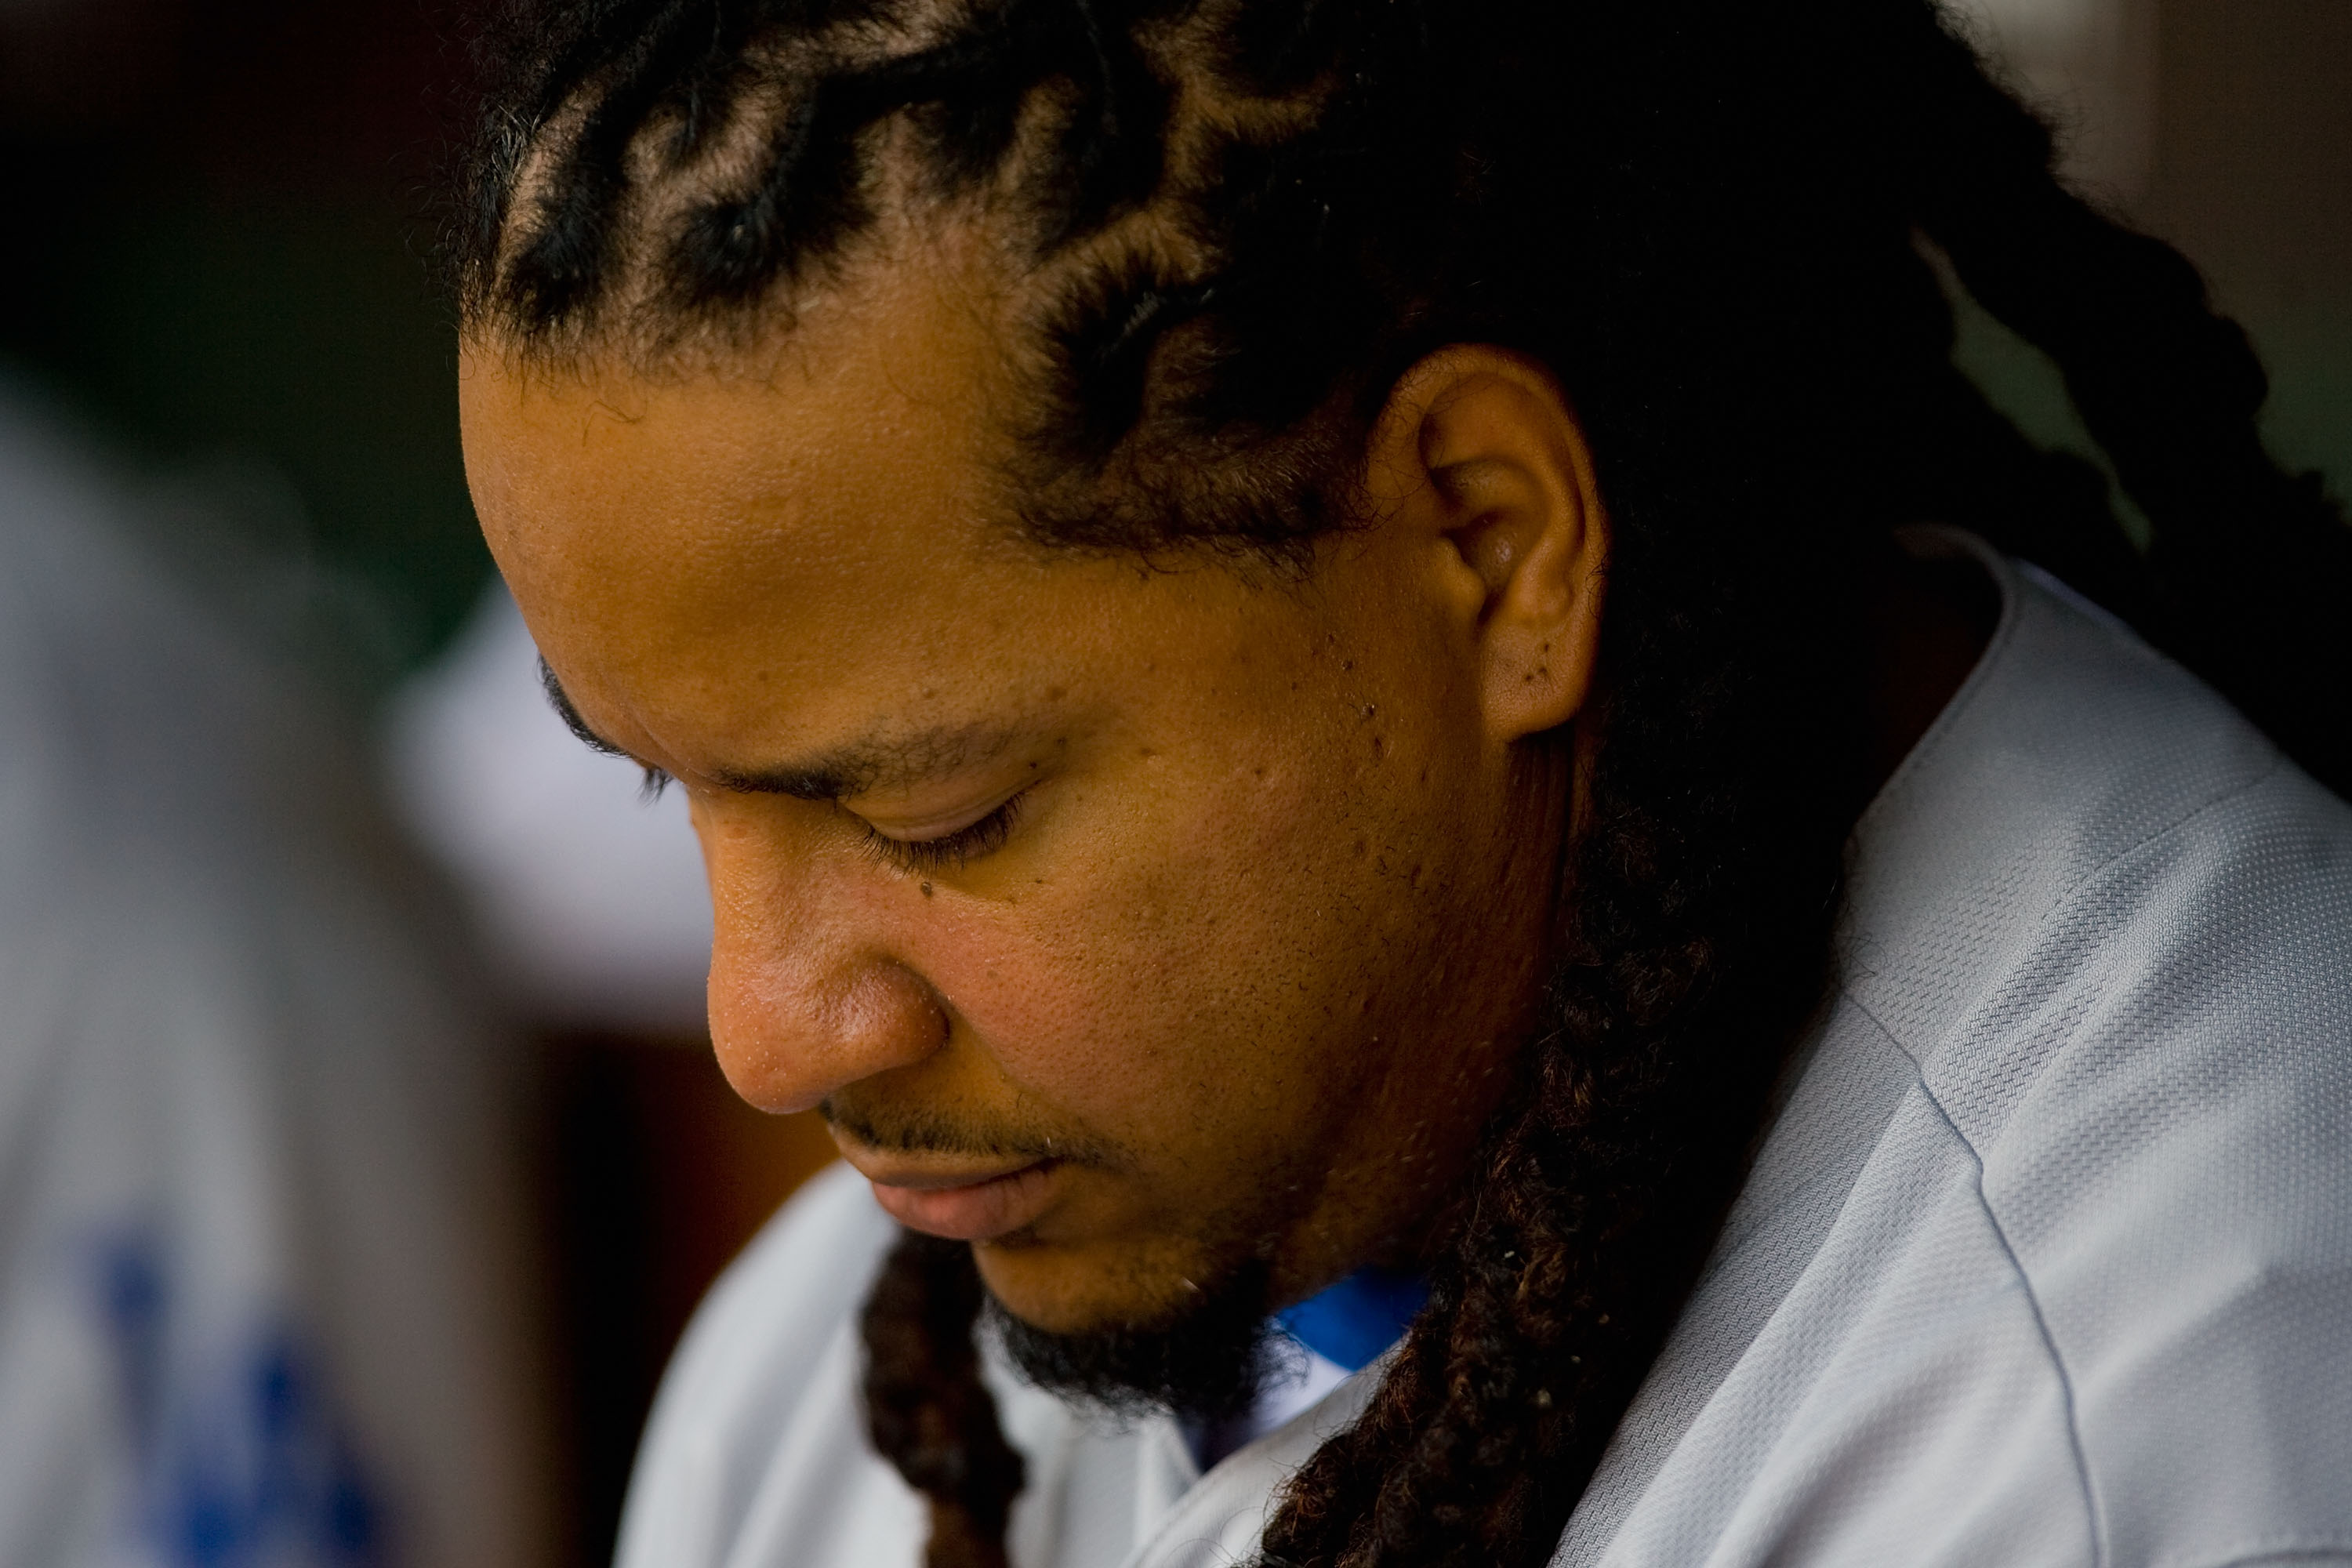 ST. LOUIS - JULY 18: Manny Ramirez #99 of the Los Angeles Dodgers sits in the dugout against the St. Louis Cardinals at Busch Stadium on July 18, 2010 in St. Louis, Missouri.  (Photo by Dilip Vishwanat/Getty Images)